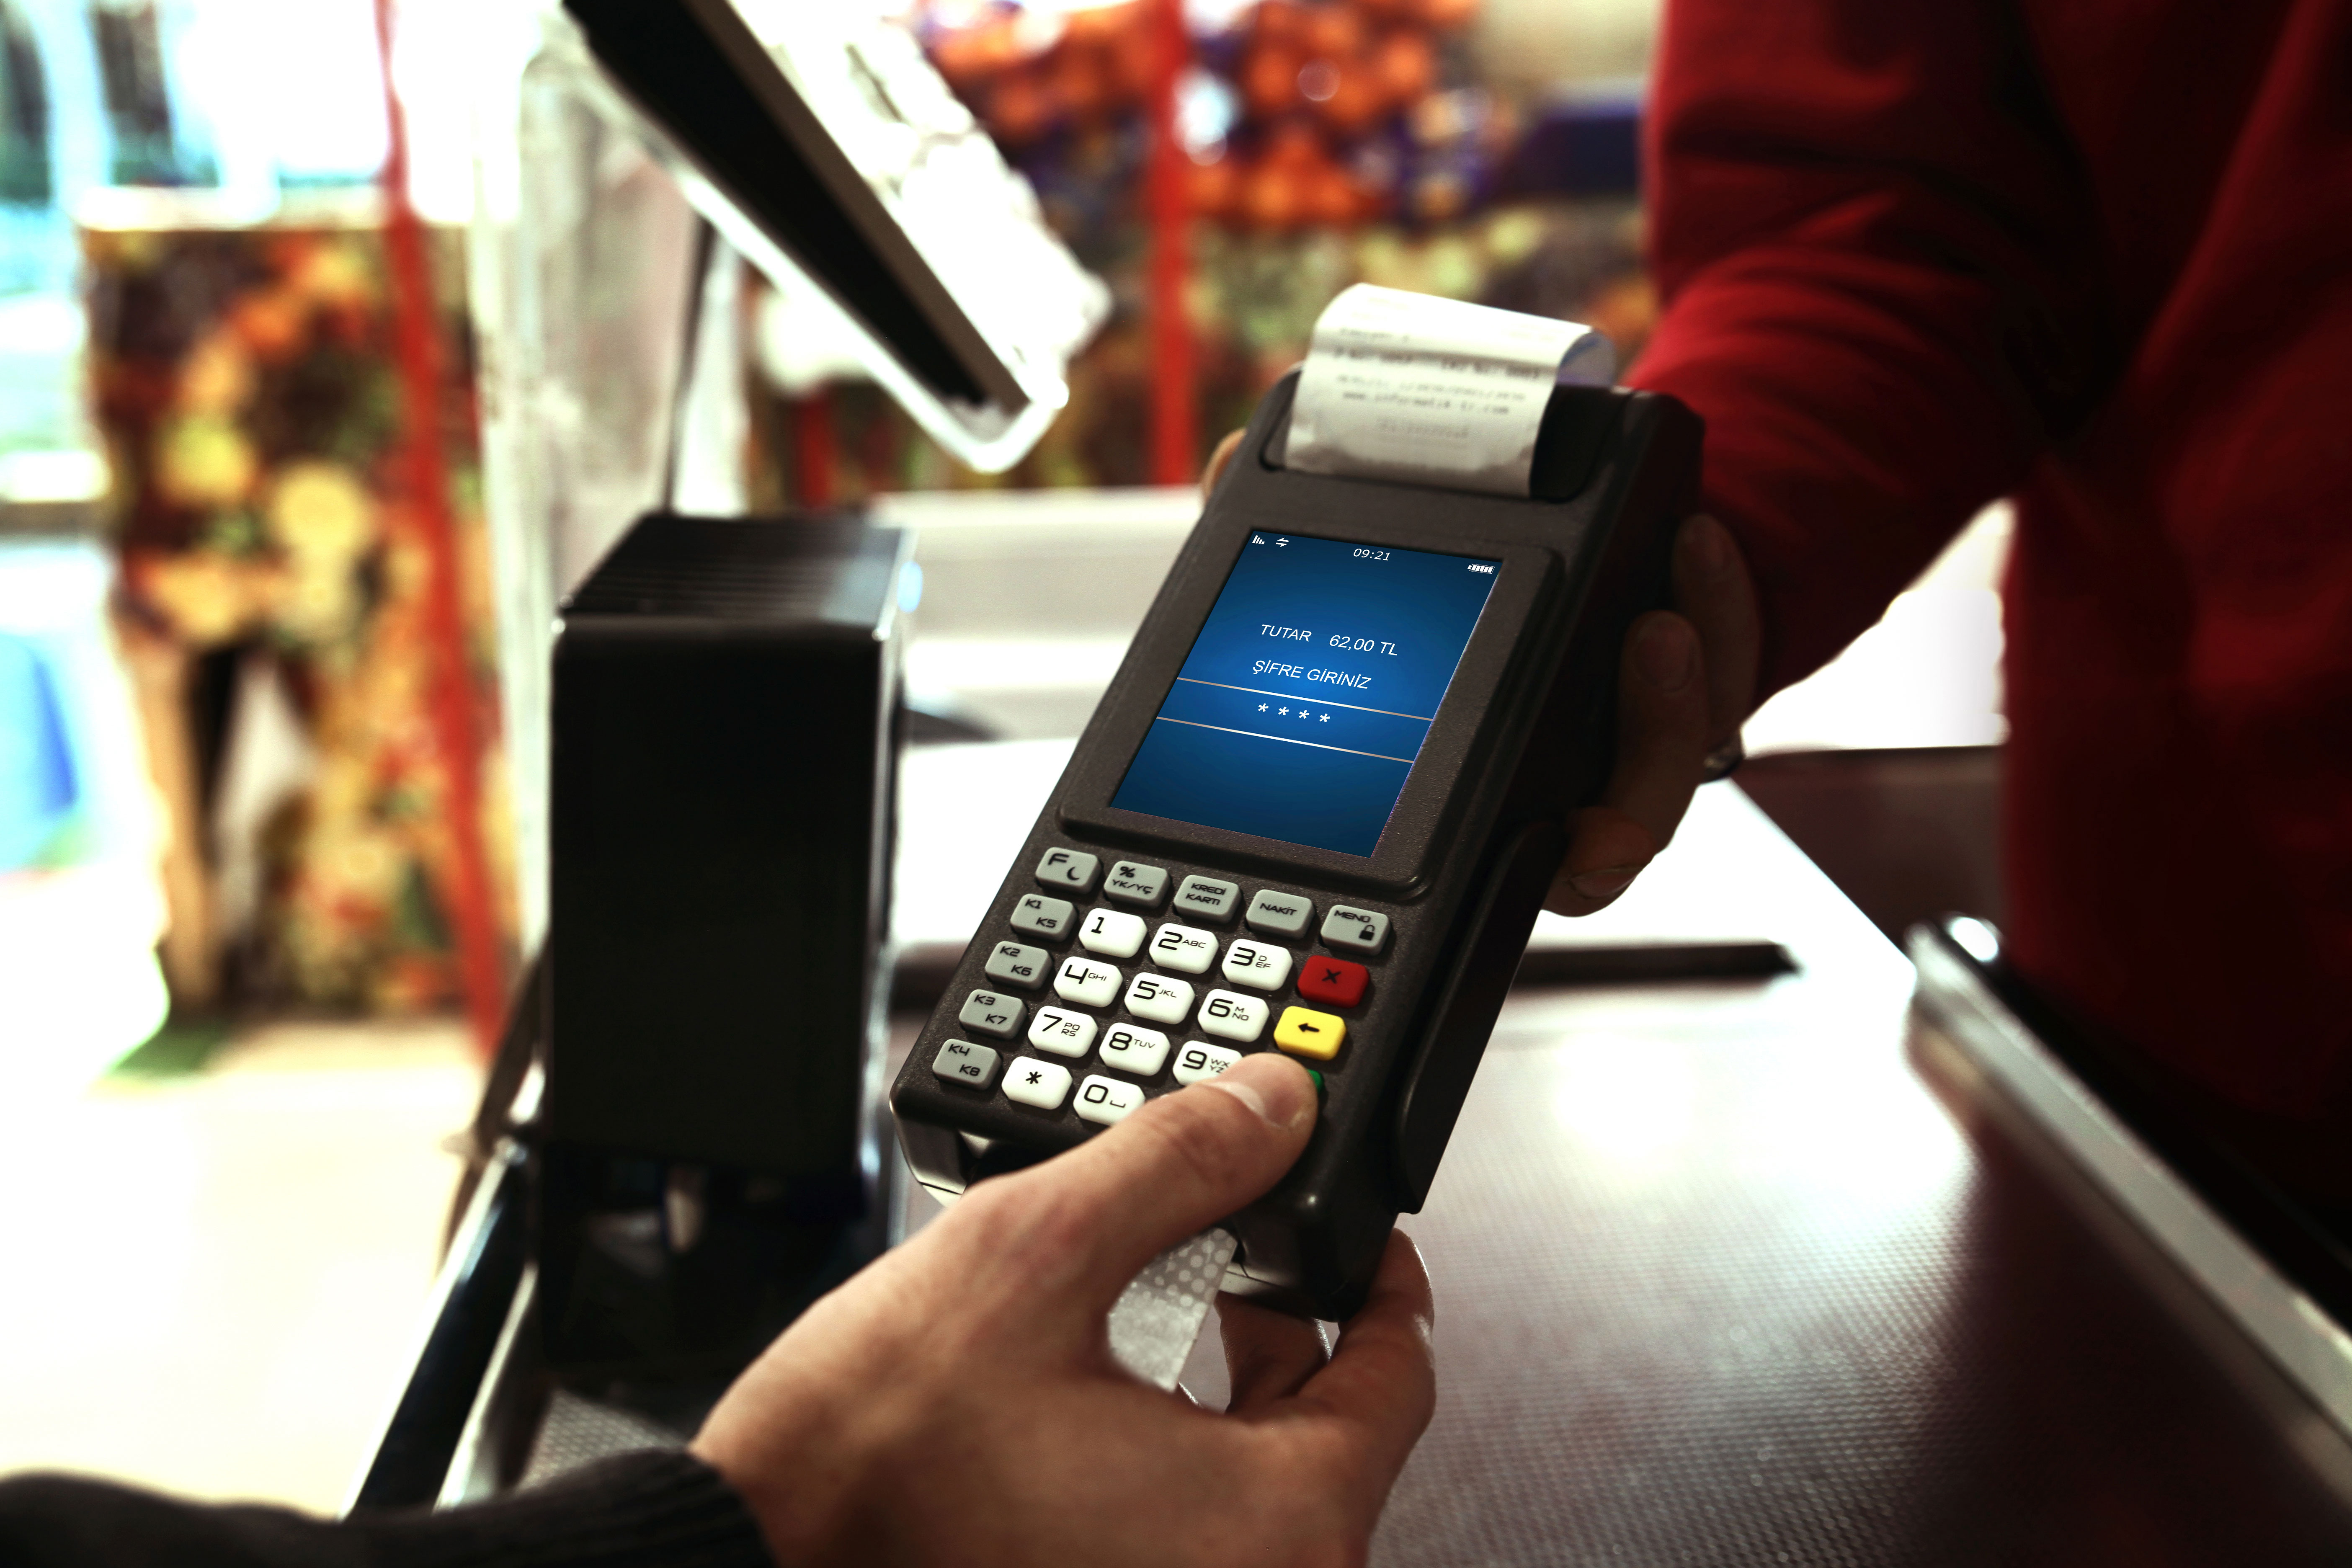 Photo of a credit card transaction